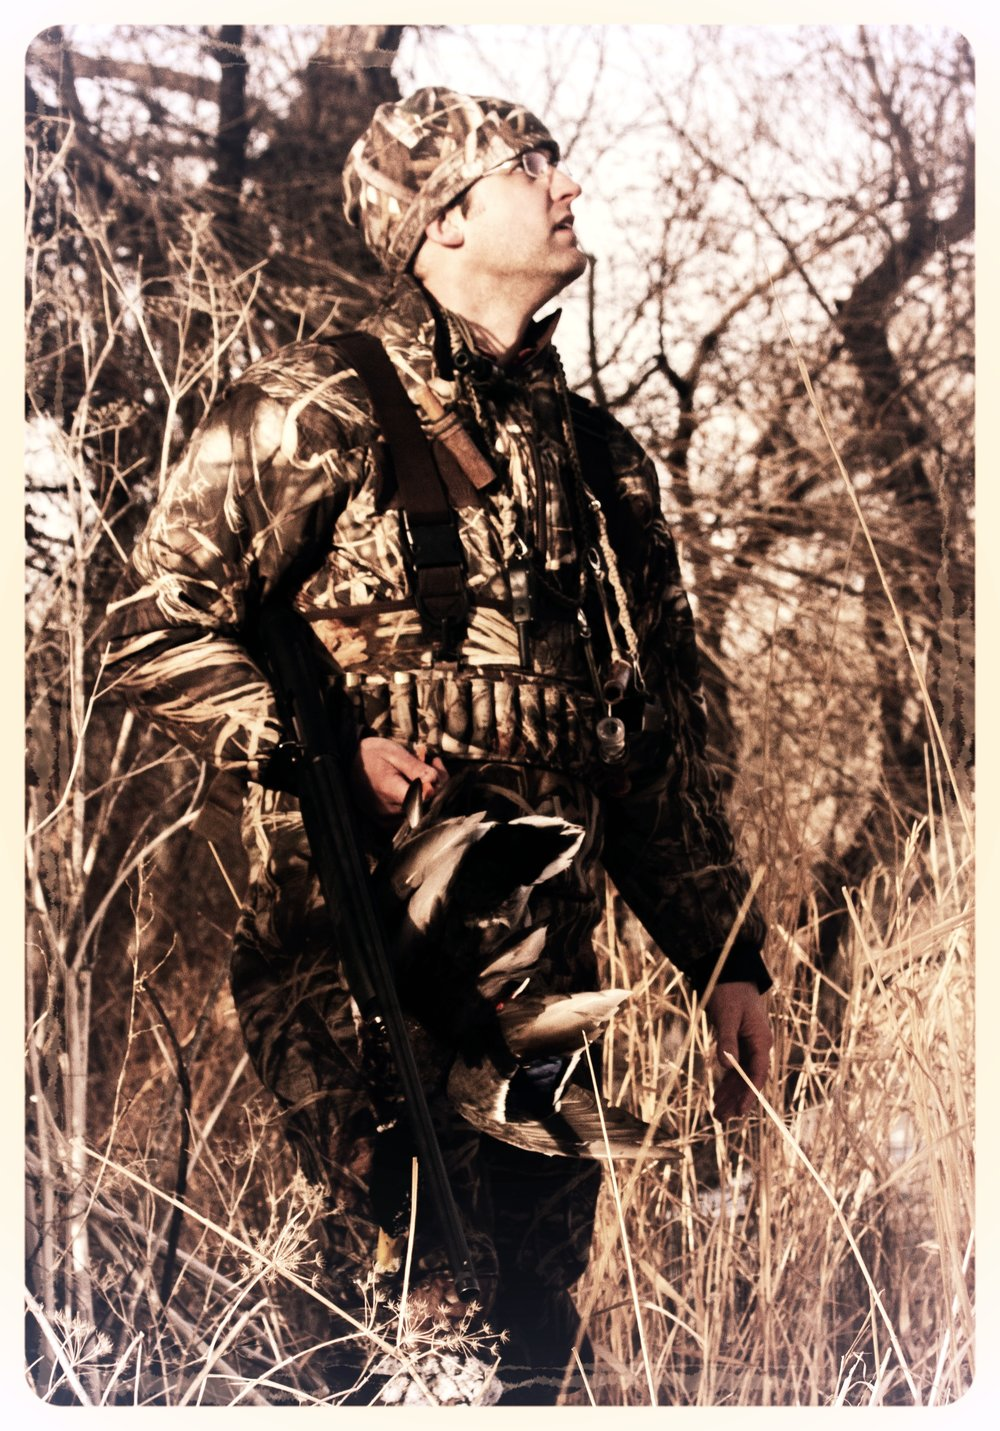 Hunting Violation Attorney Nate Gilbert is an experienced lawyer handling cases for hunters accused of hunting, fishing, and trapping violations by law enforcement.  Nate is an avid hunter and outdoorsman and dedicates a large portion of his practice to serving the needs of his fellow sportsmen and women.  Having appeared for clients in numerous courts and consulted with hunters across the nation, Nate has a vast knowledge of wildlife laws and practical experience that he brings to each case.